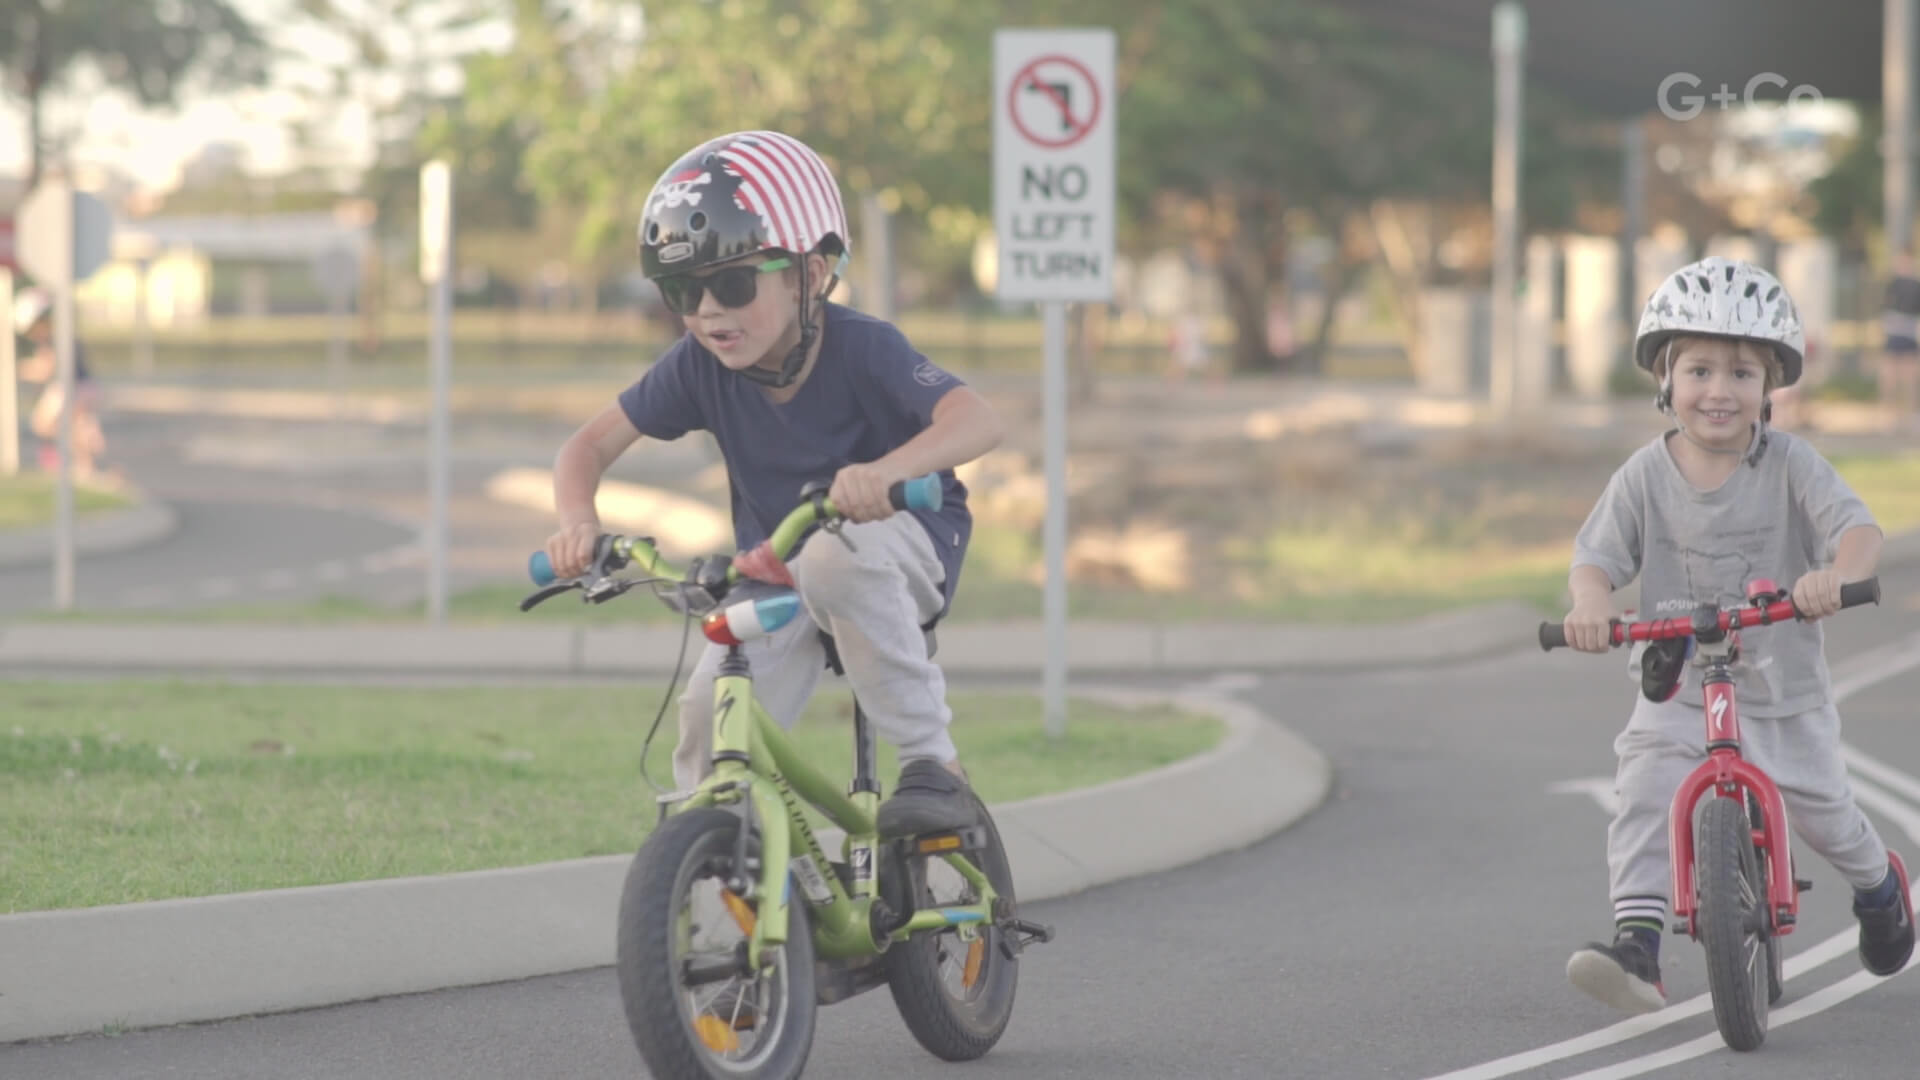 still frame from creative documentary film: kids riding a bike